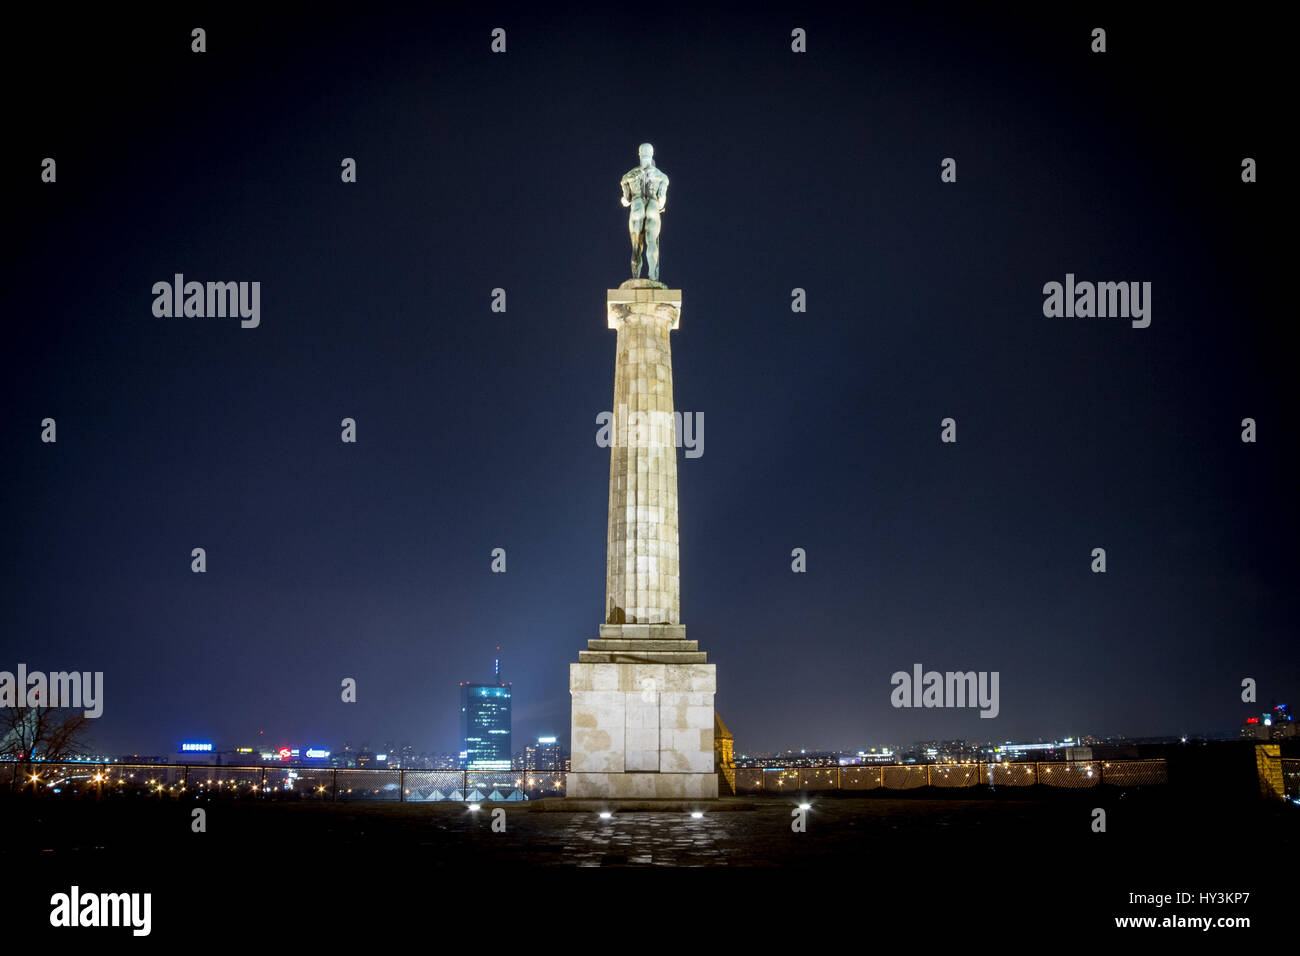 Victor statue on Kalemegdan fortress by night - Belgrade - Serbia   Picture of the iconic victory statue seen on - Stock Image